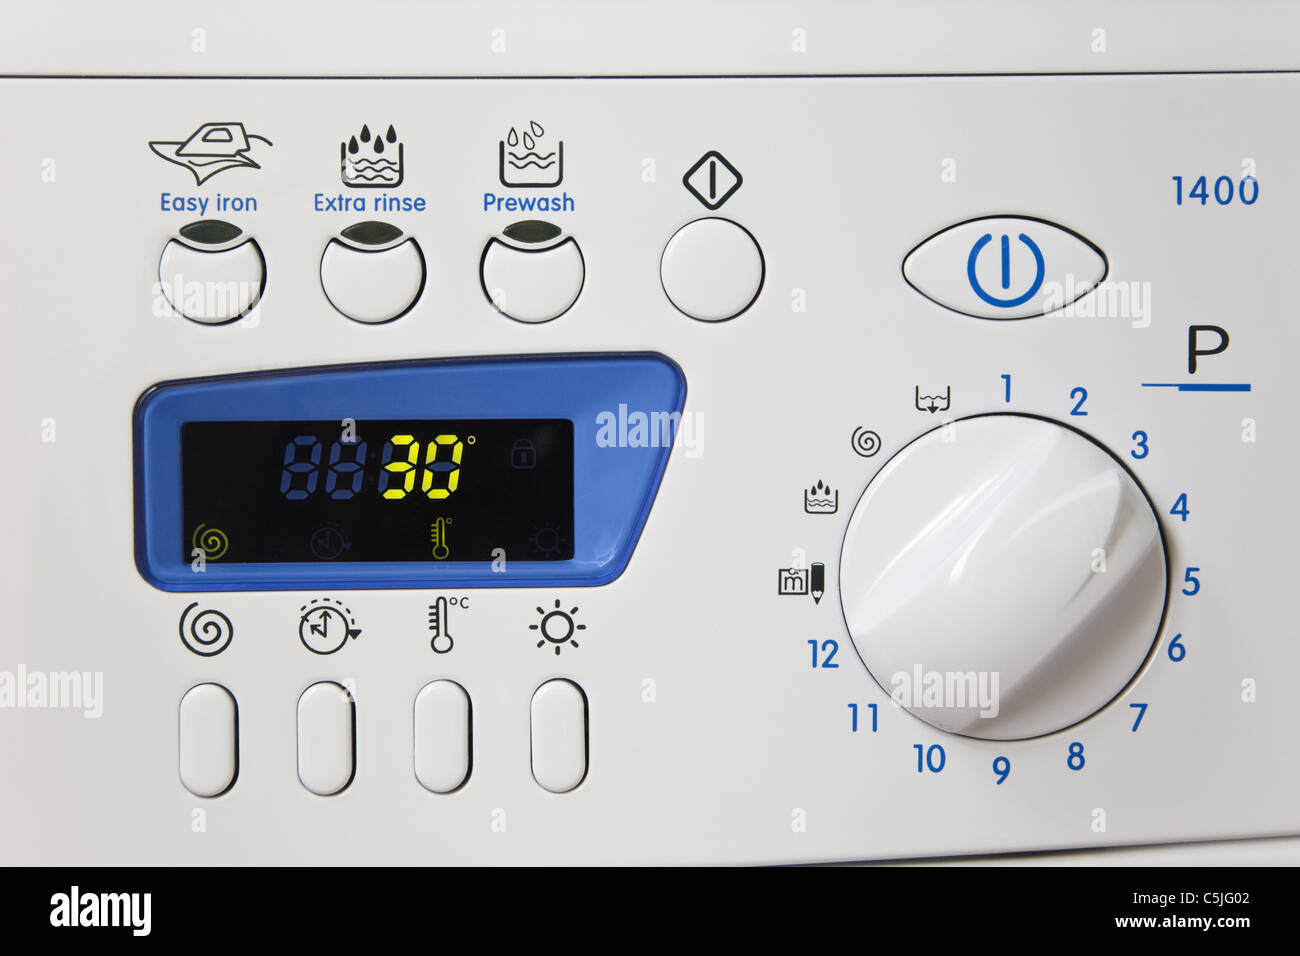 Automatic washing machine control panel set on an easy care program at a low temperature cool wash of 30 degrees - Stock Image